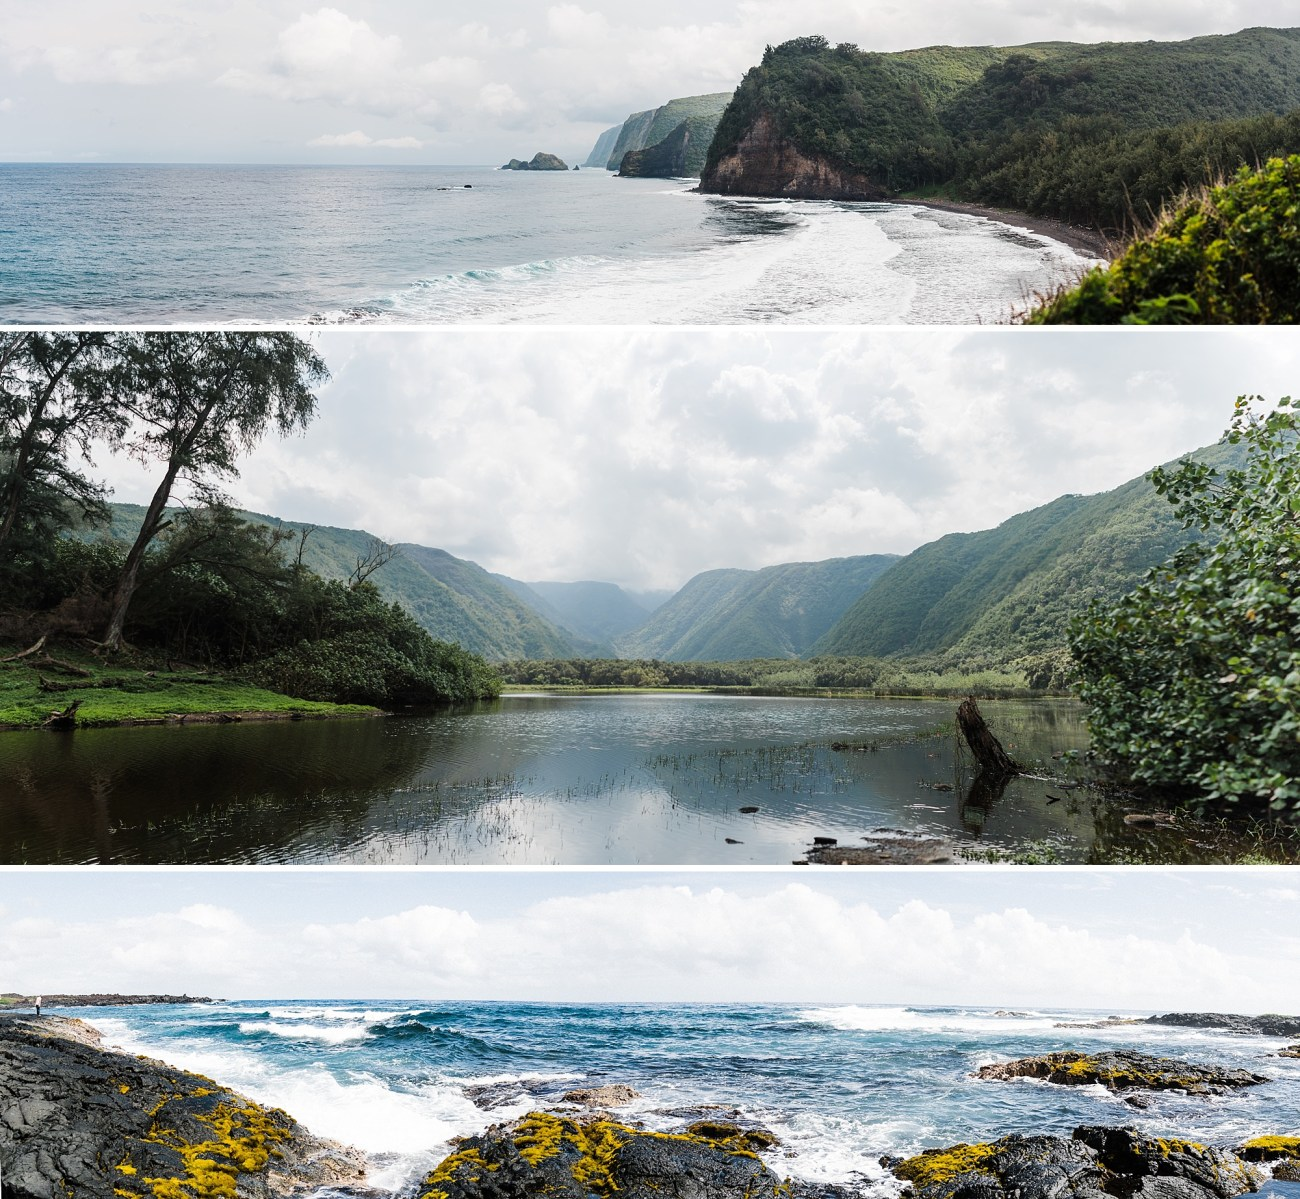 Collection of three panoramas taken on the big island of Hawaii by Forthright Photo